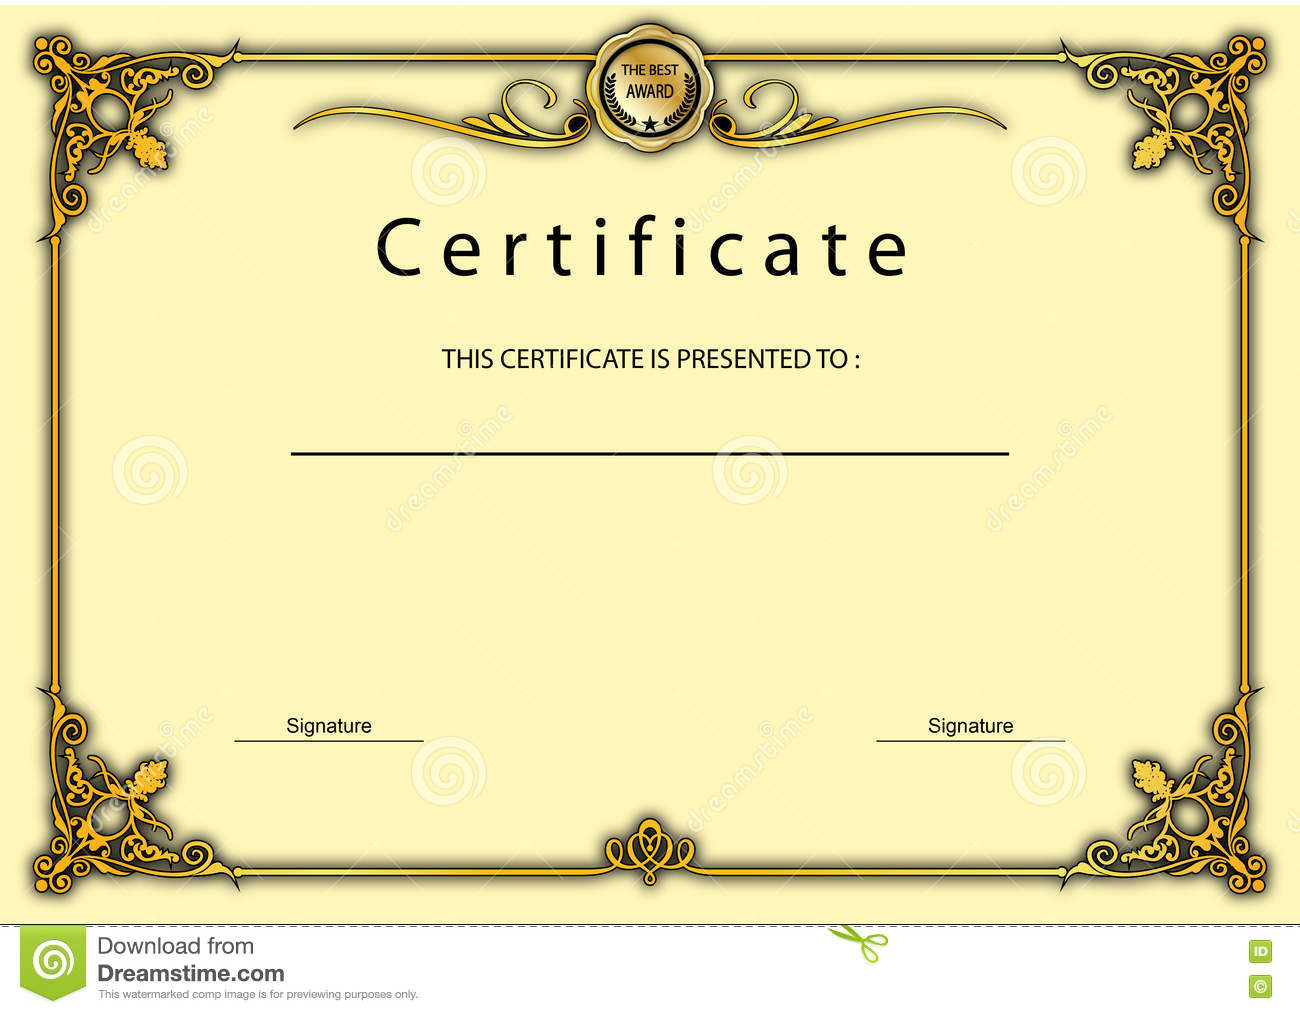 Certificate of Excellence Award Template  Education World